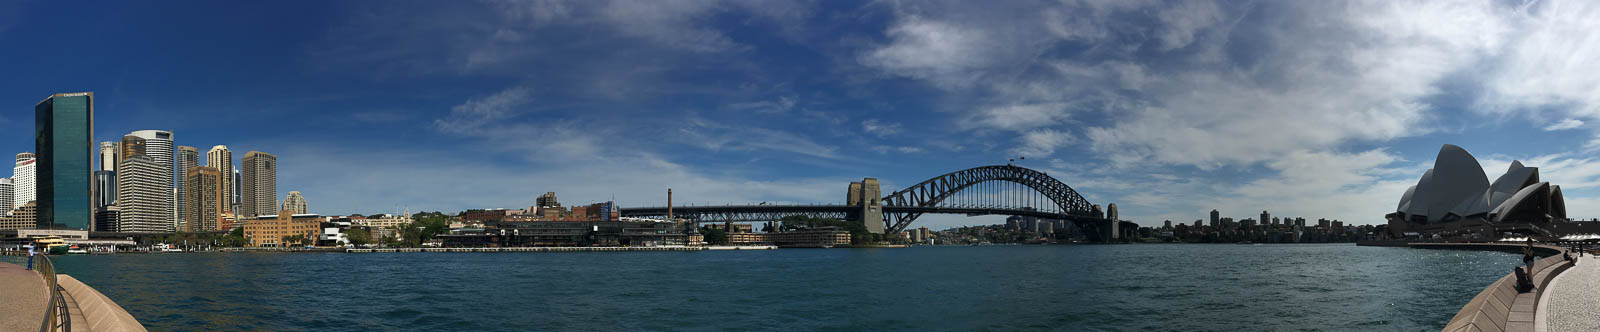 sydney-harbour-panorama